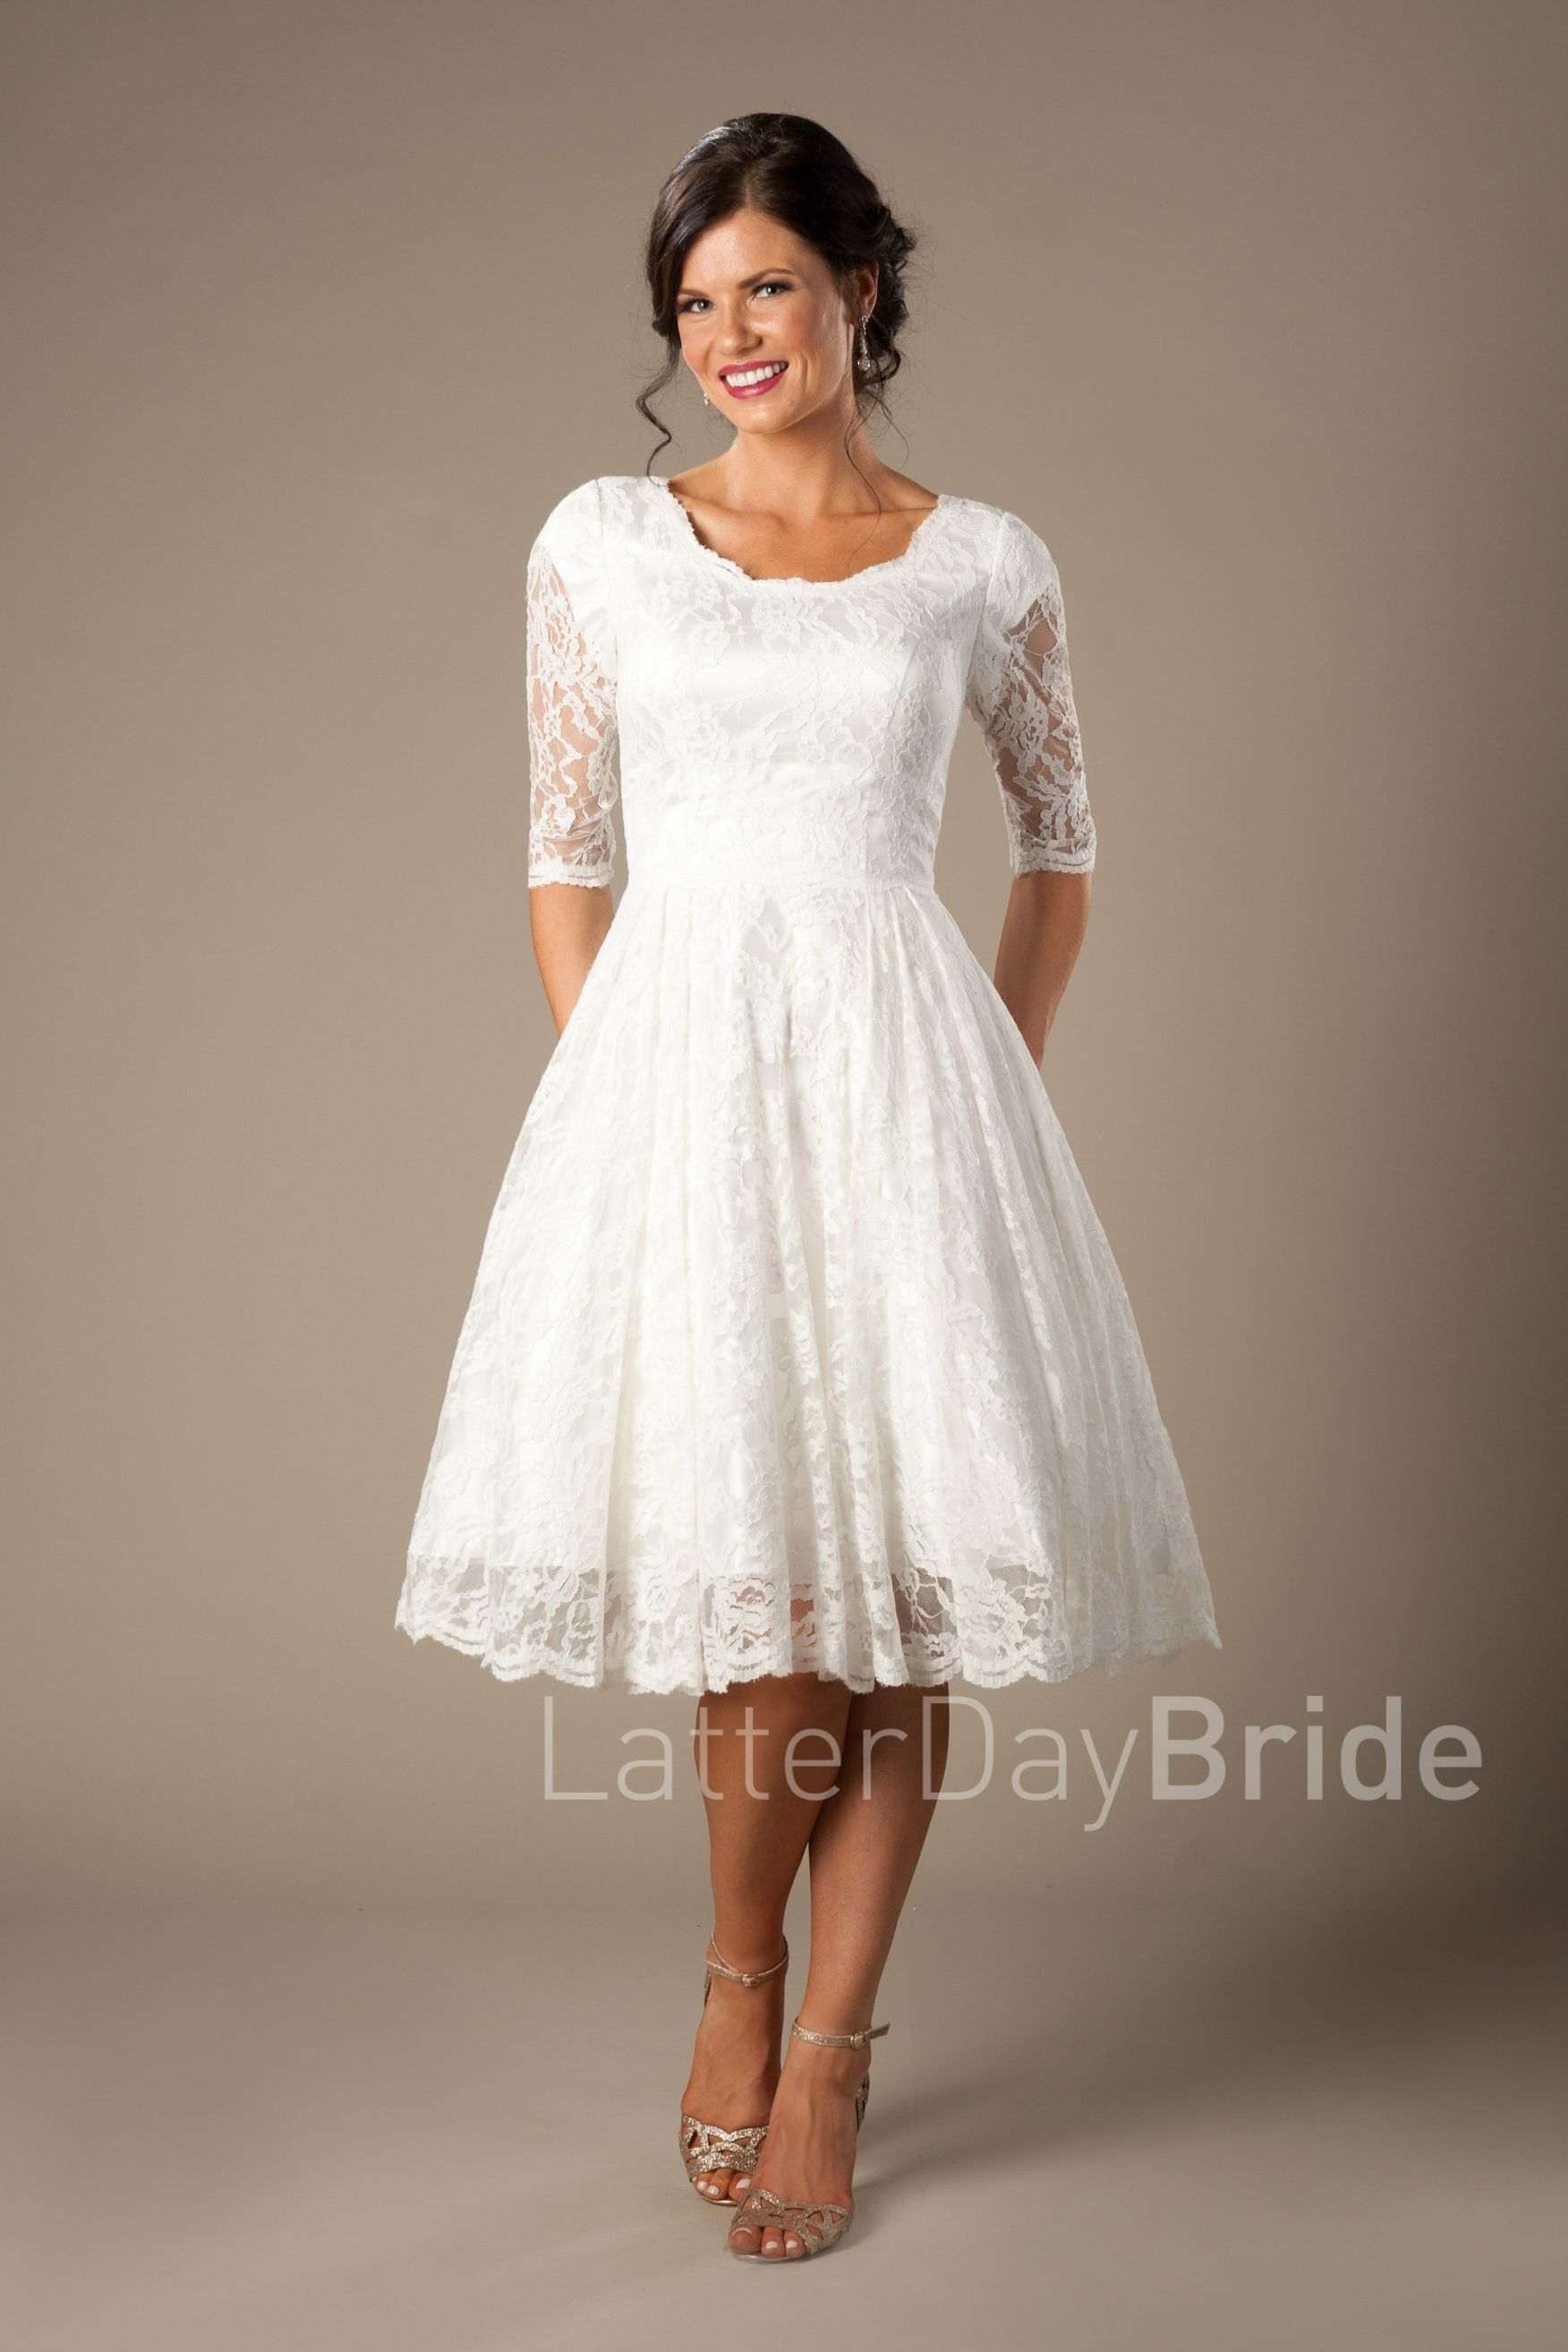 Quinn Modest Wedding Dress Latterdaybride Prom Slc